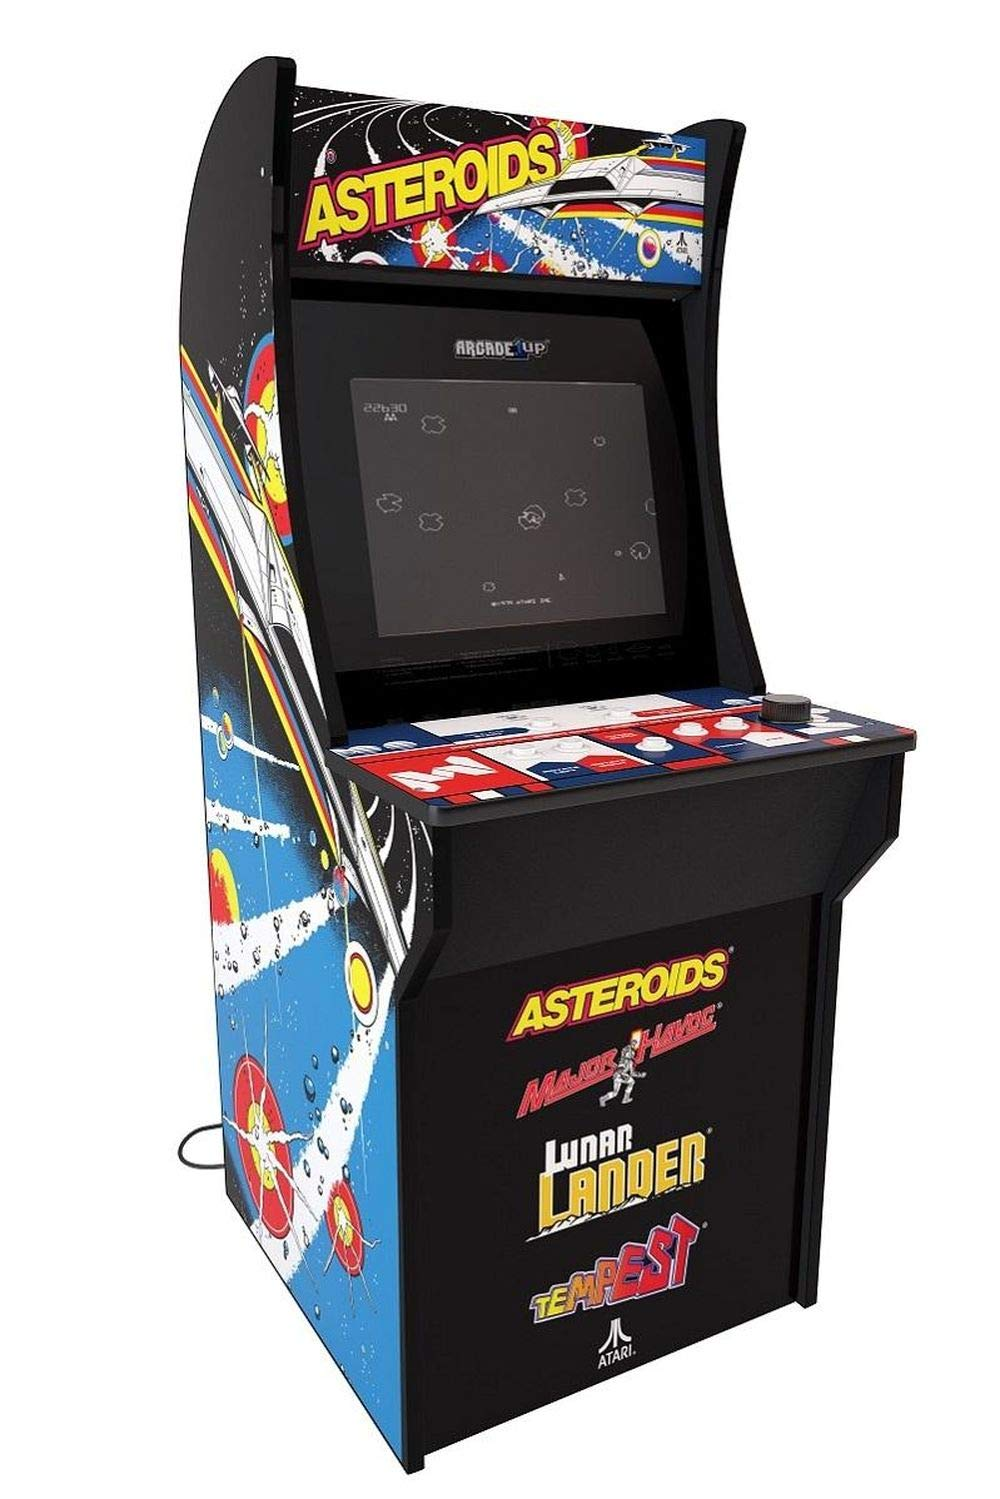 Arcade 1Up – Asteroids Deluxe Classic Arcade Game Cabinet for Kids and Adults – 3/4 Scale – Coinless Operation – 4 Games in 1 (Asteroids, Major Havoc, Lunar Lander and Tempest) by Arcade 1 Up (Image #2)